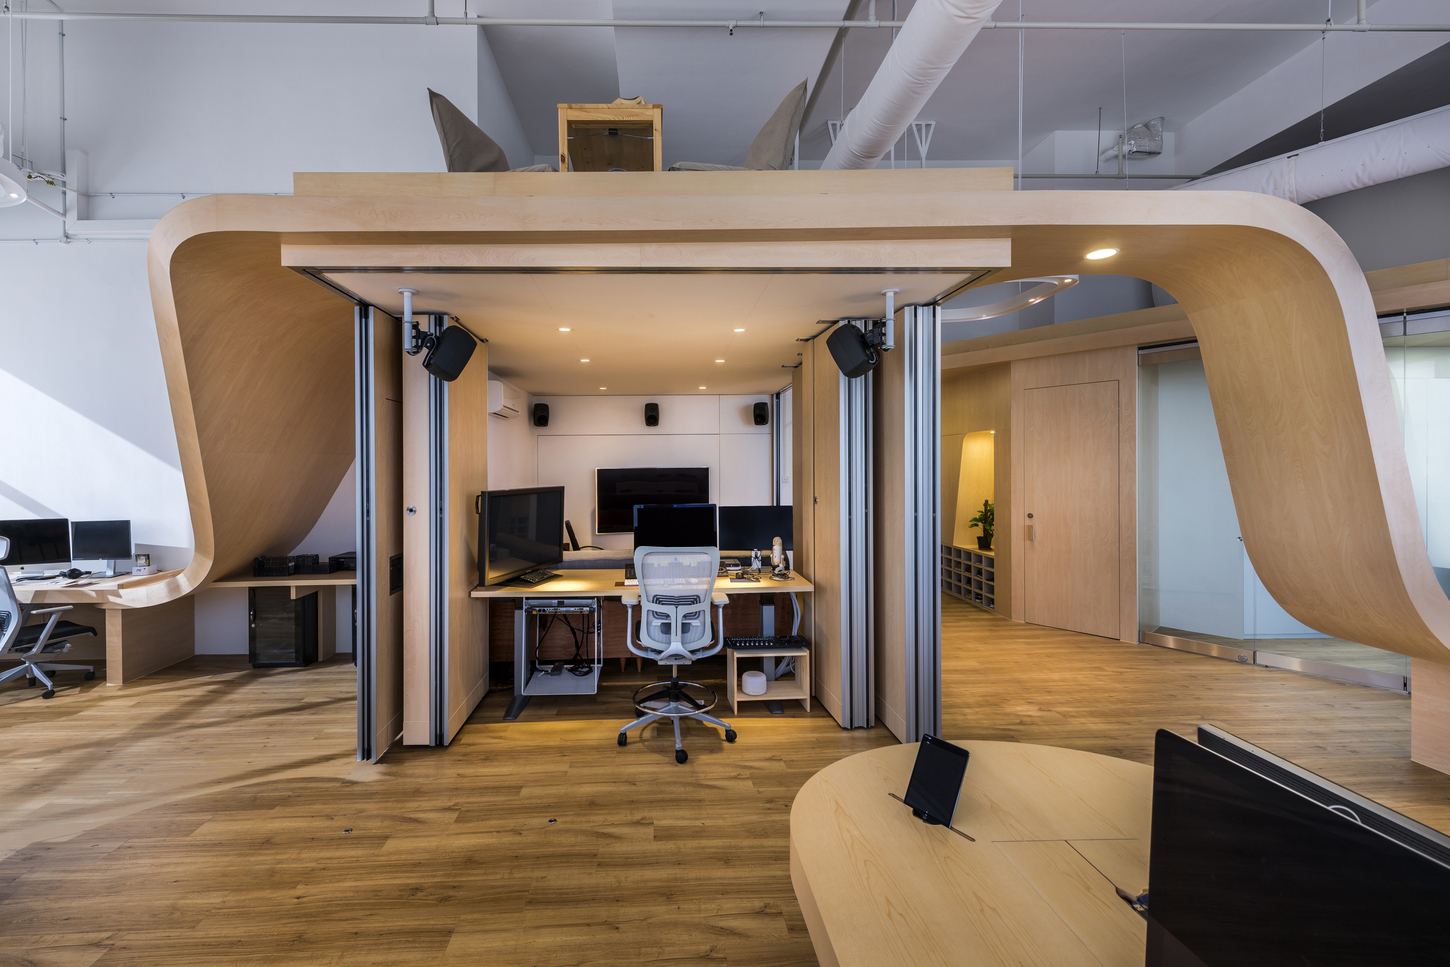 This Workspace Was Built Around a Single Undulating Desk